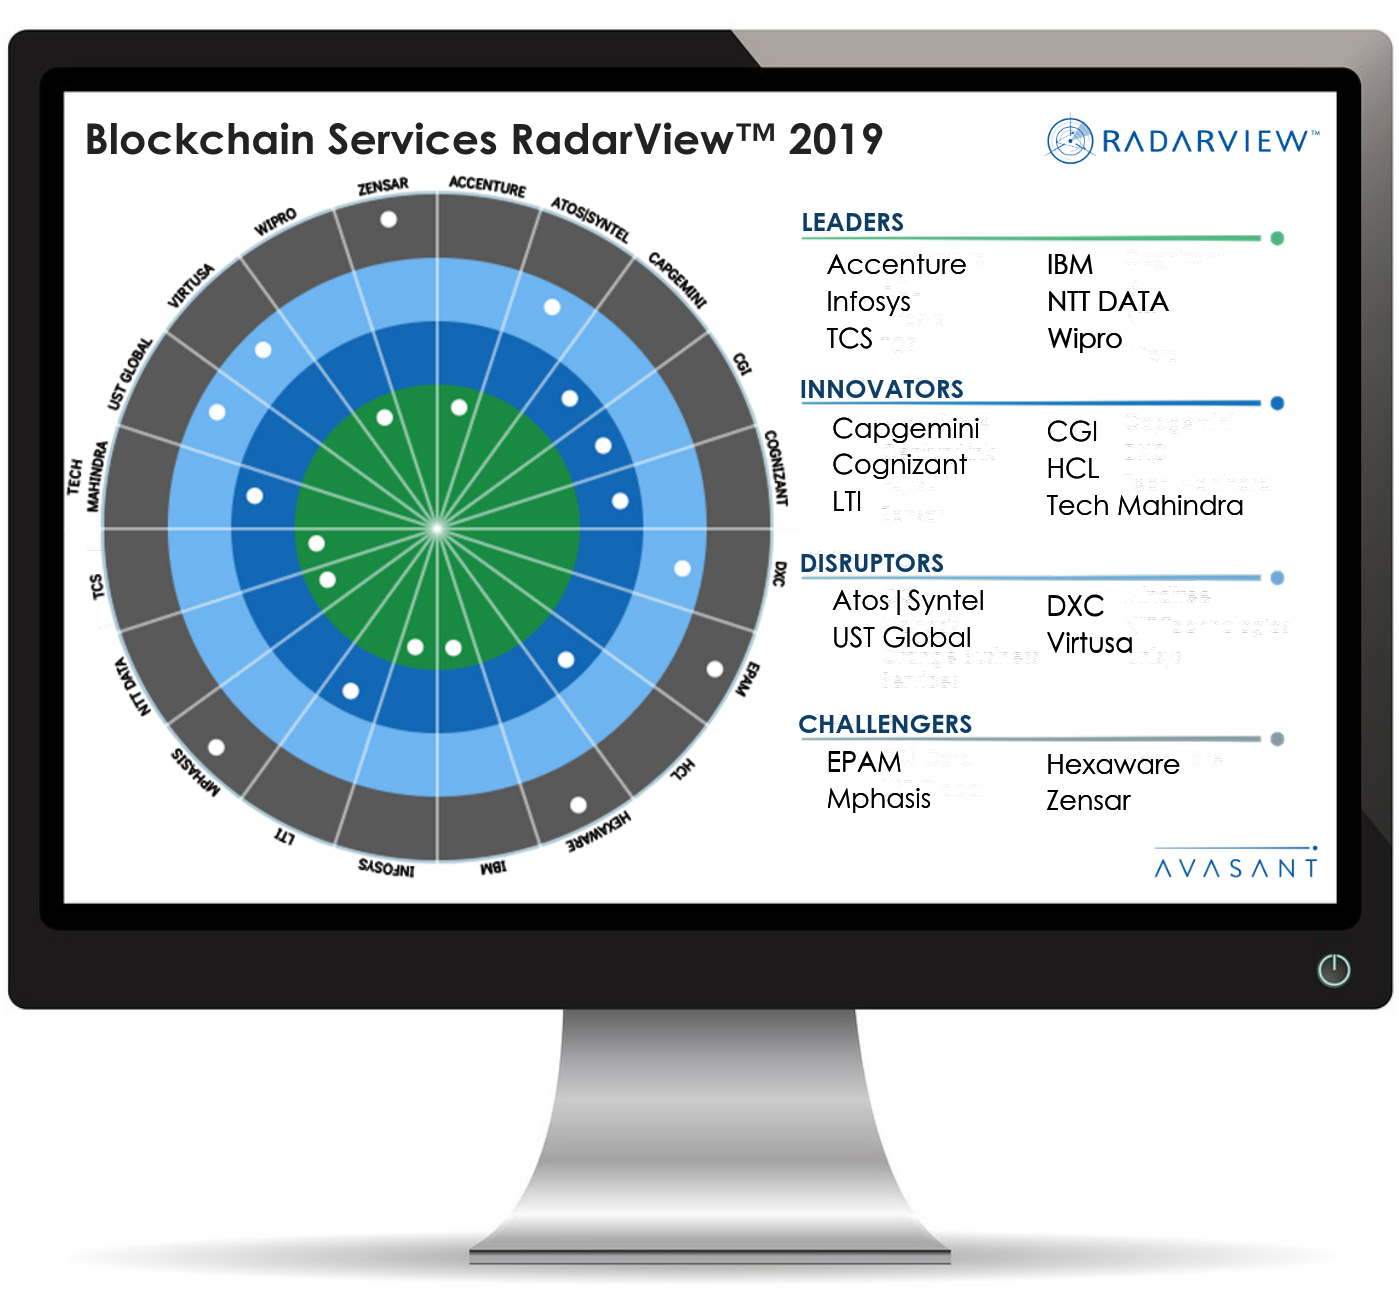 Blockchain 2019 RV web graphic - Blockchain Services 2019 IBM RadarView™ Profile